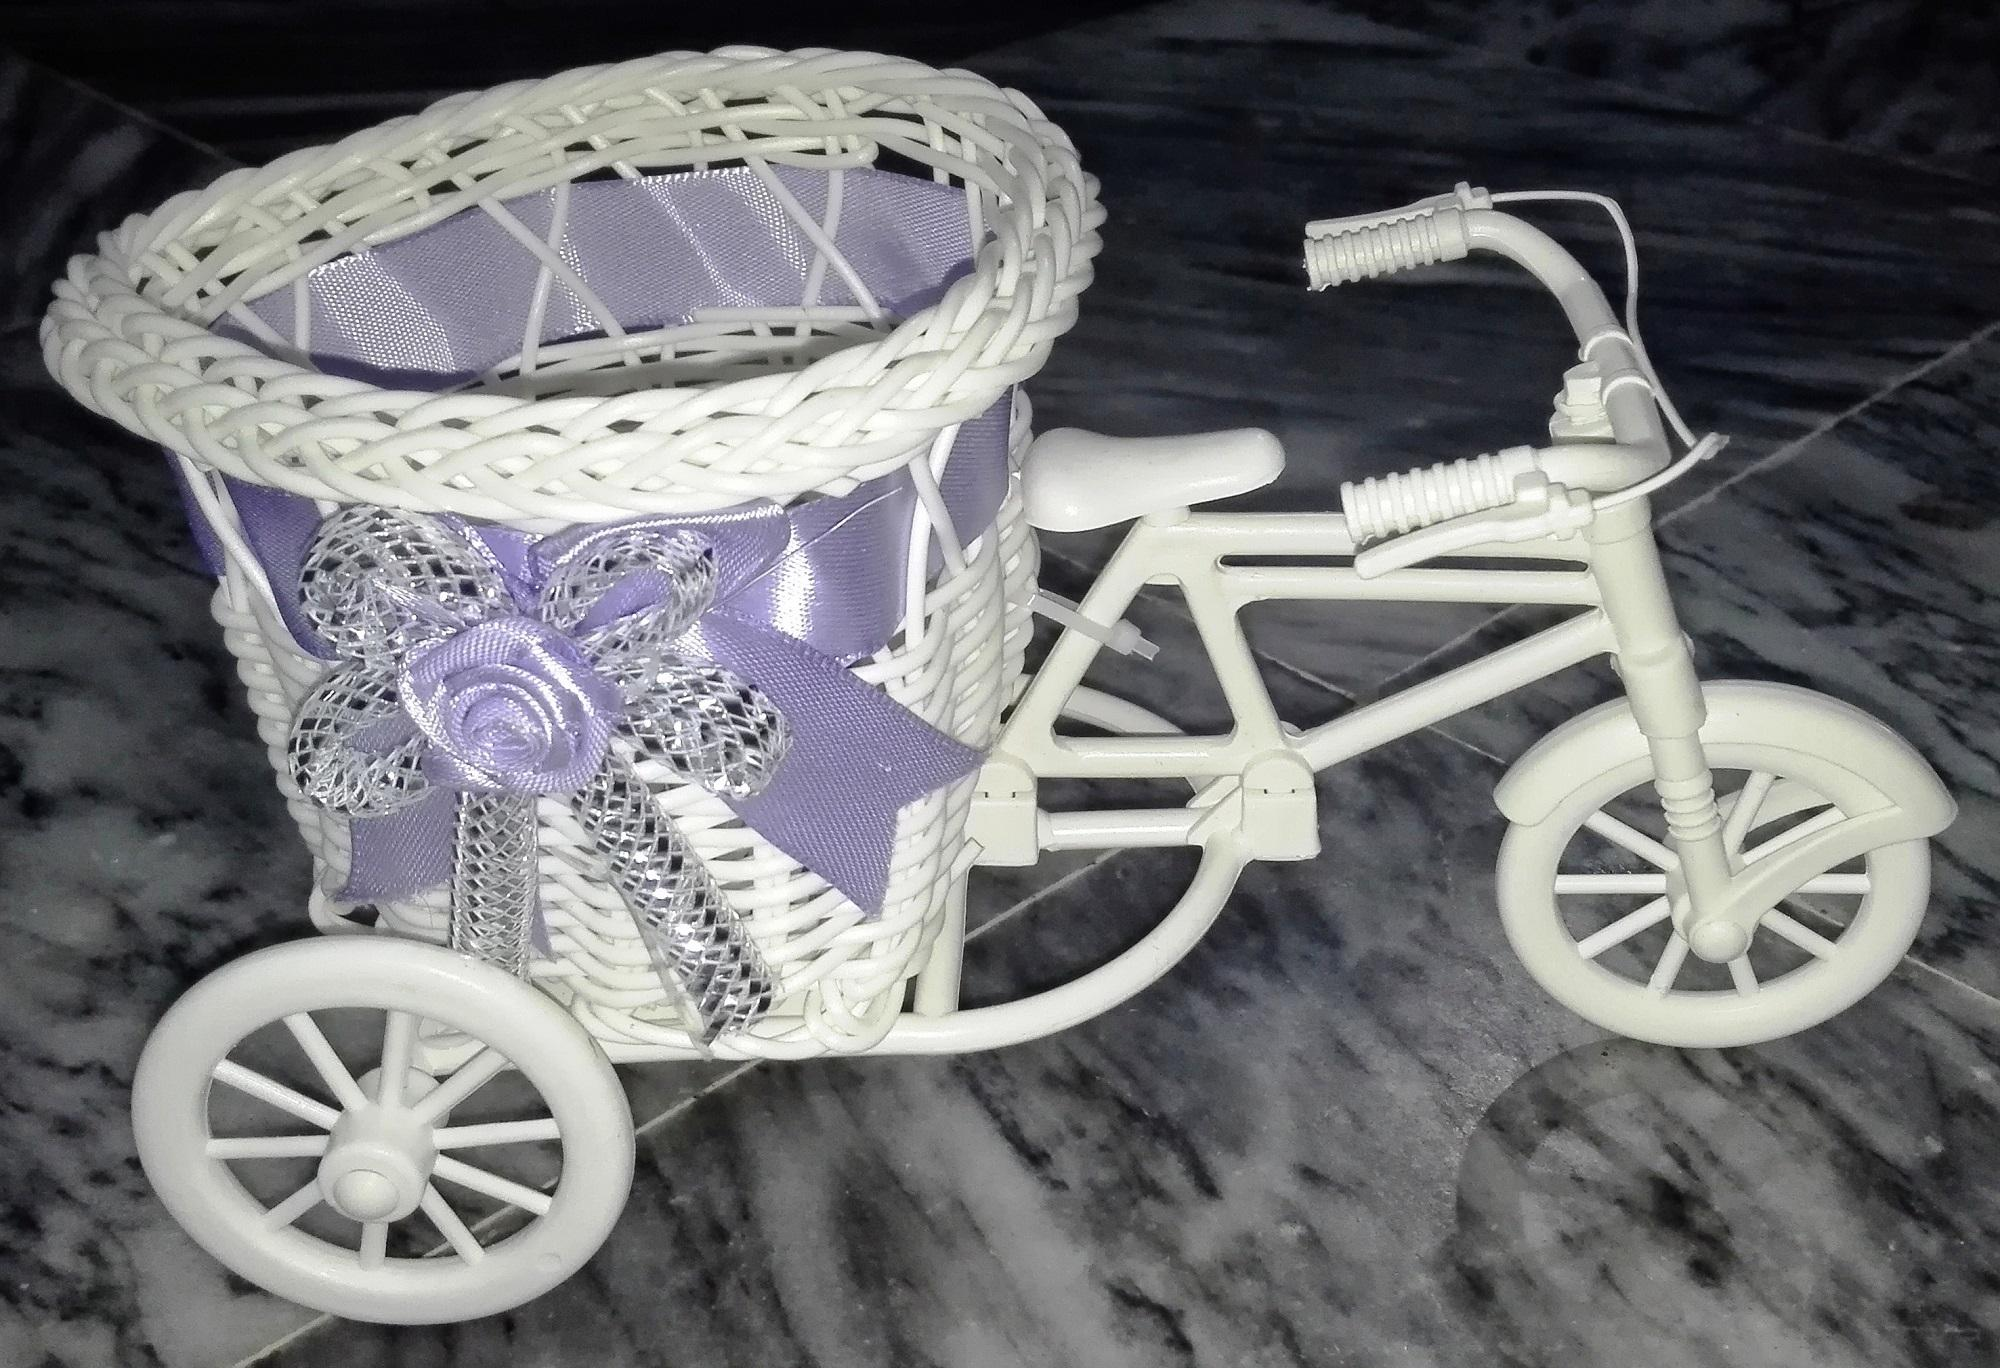 Beautiful Love Gift - Tricycle Bike Flower Basket Vase Container and Multipurpose Holder